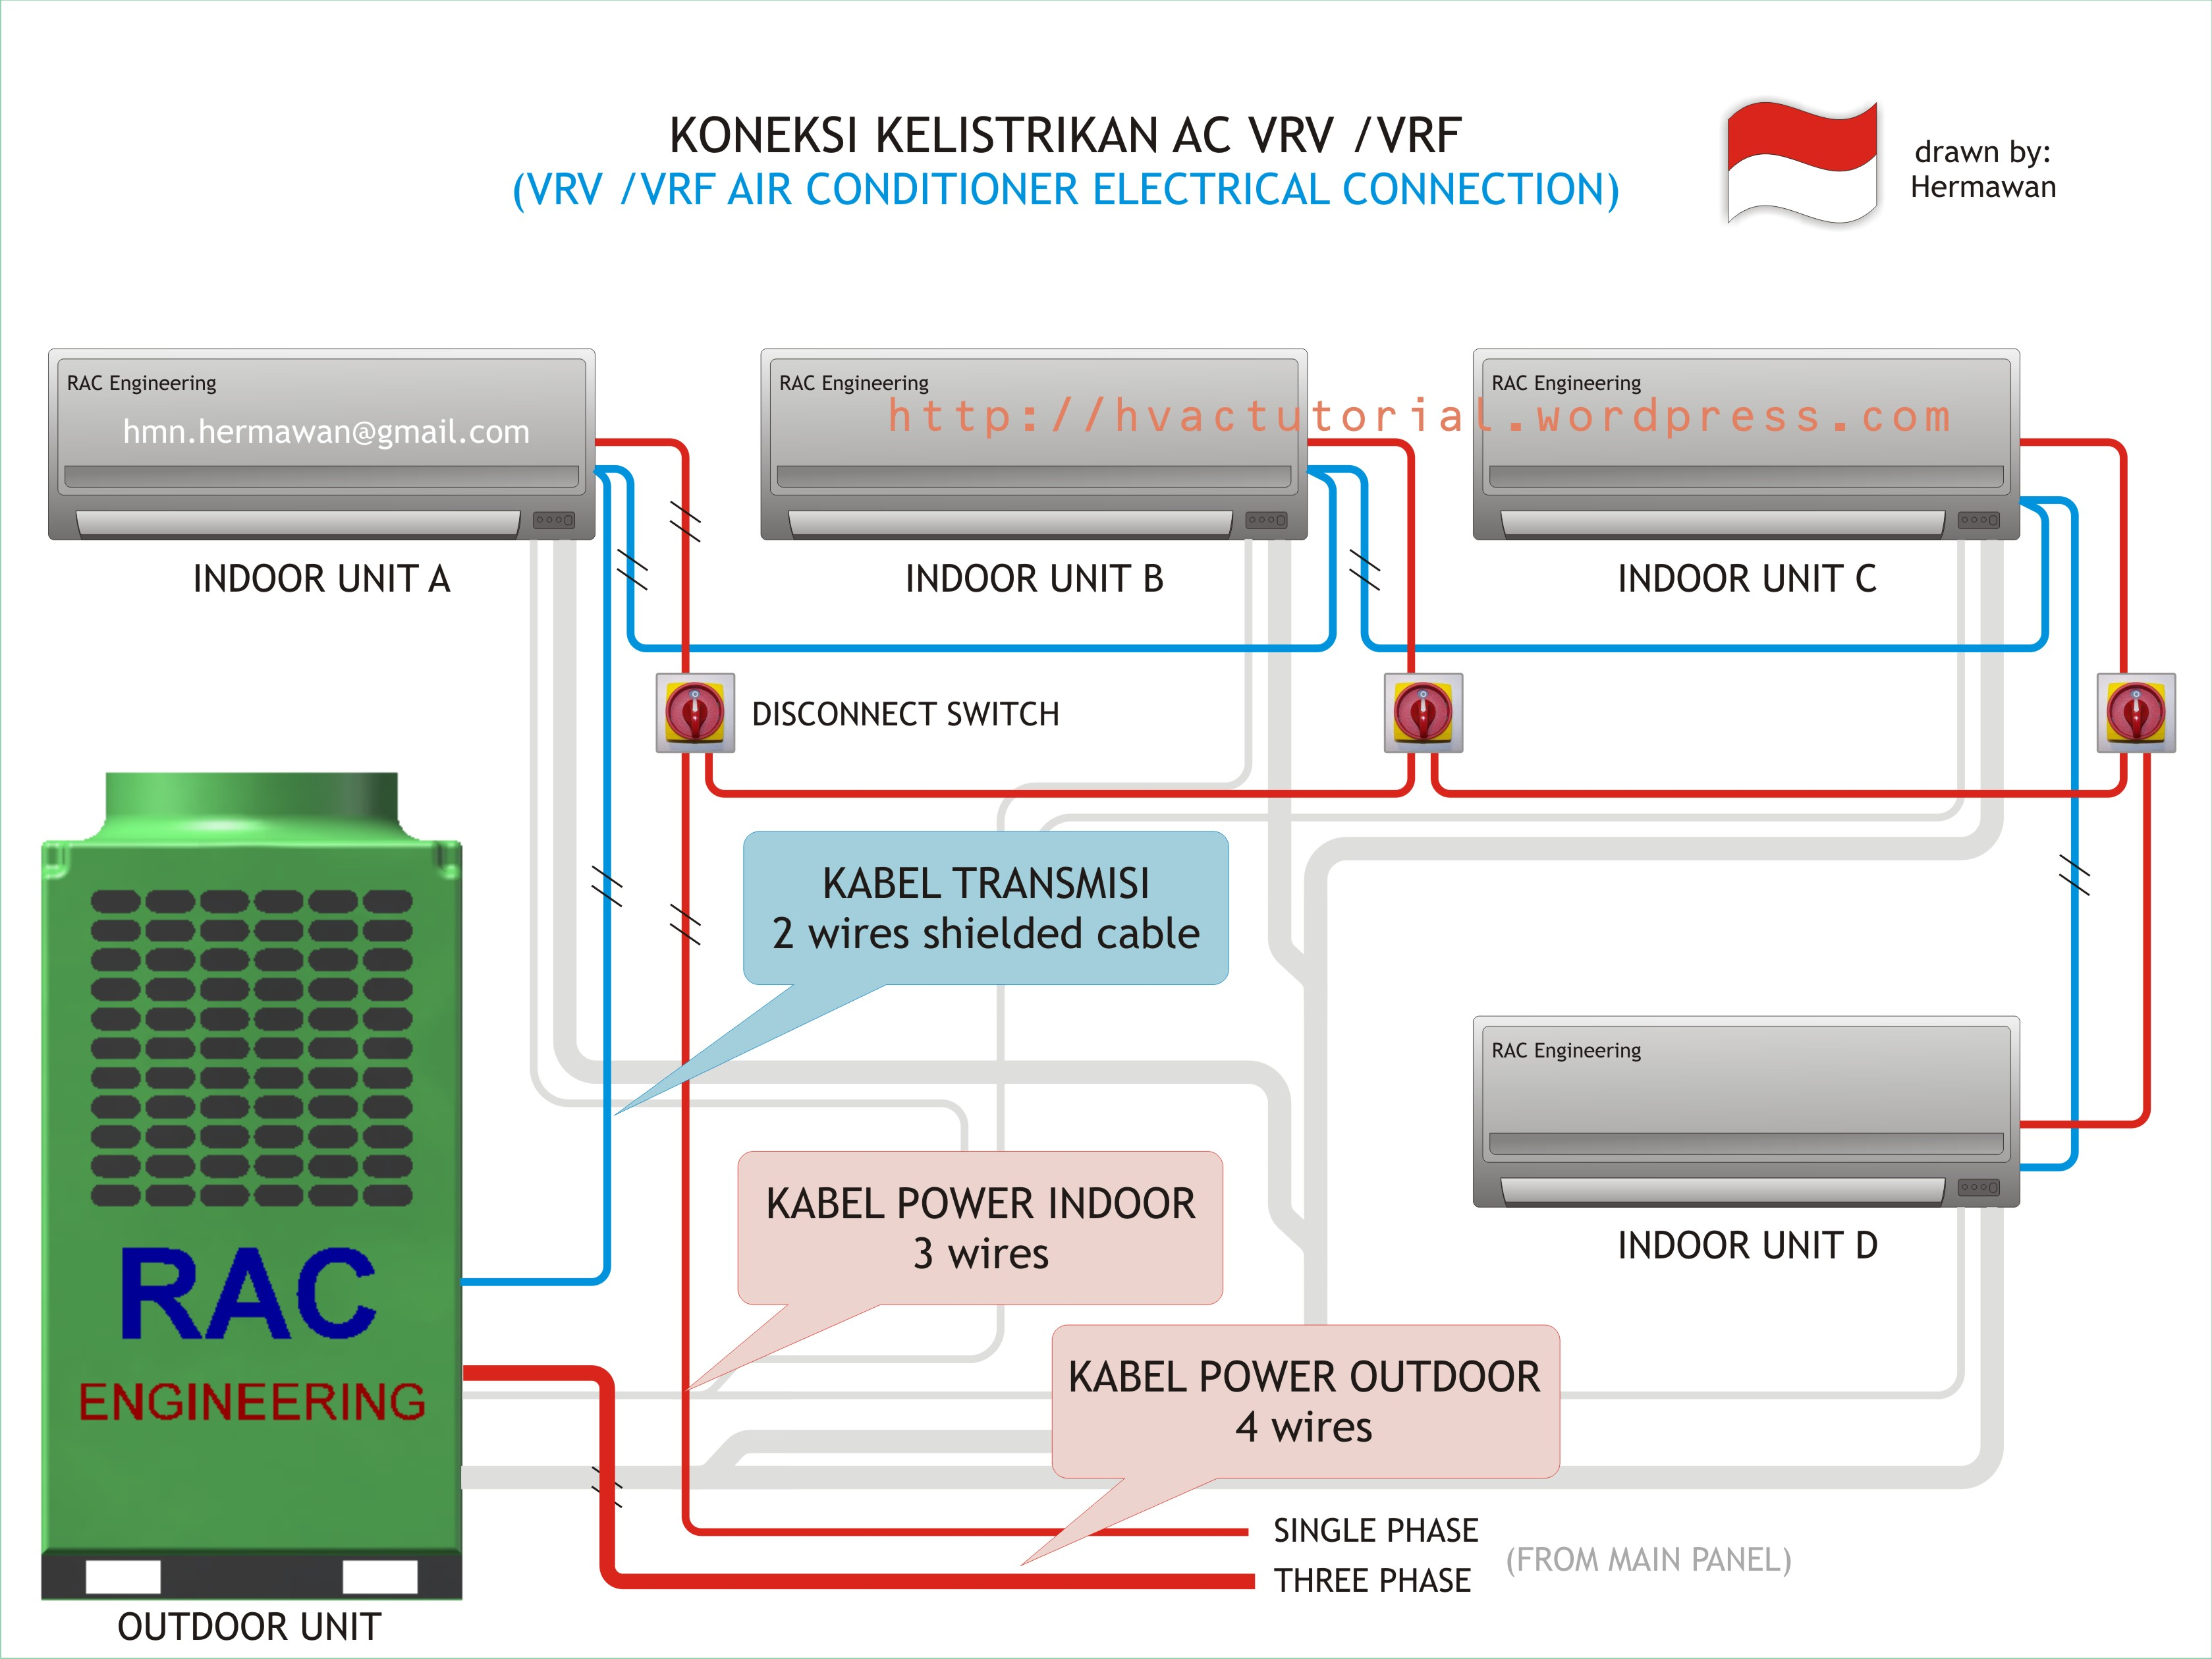 VRV Or VRF Electrical Connection